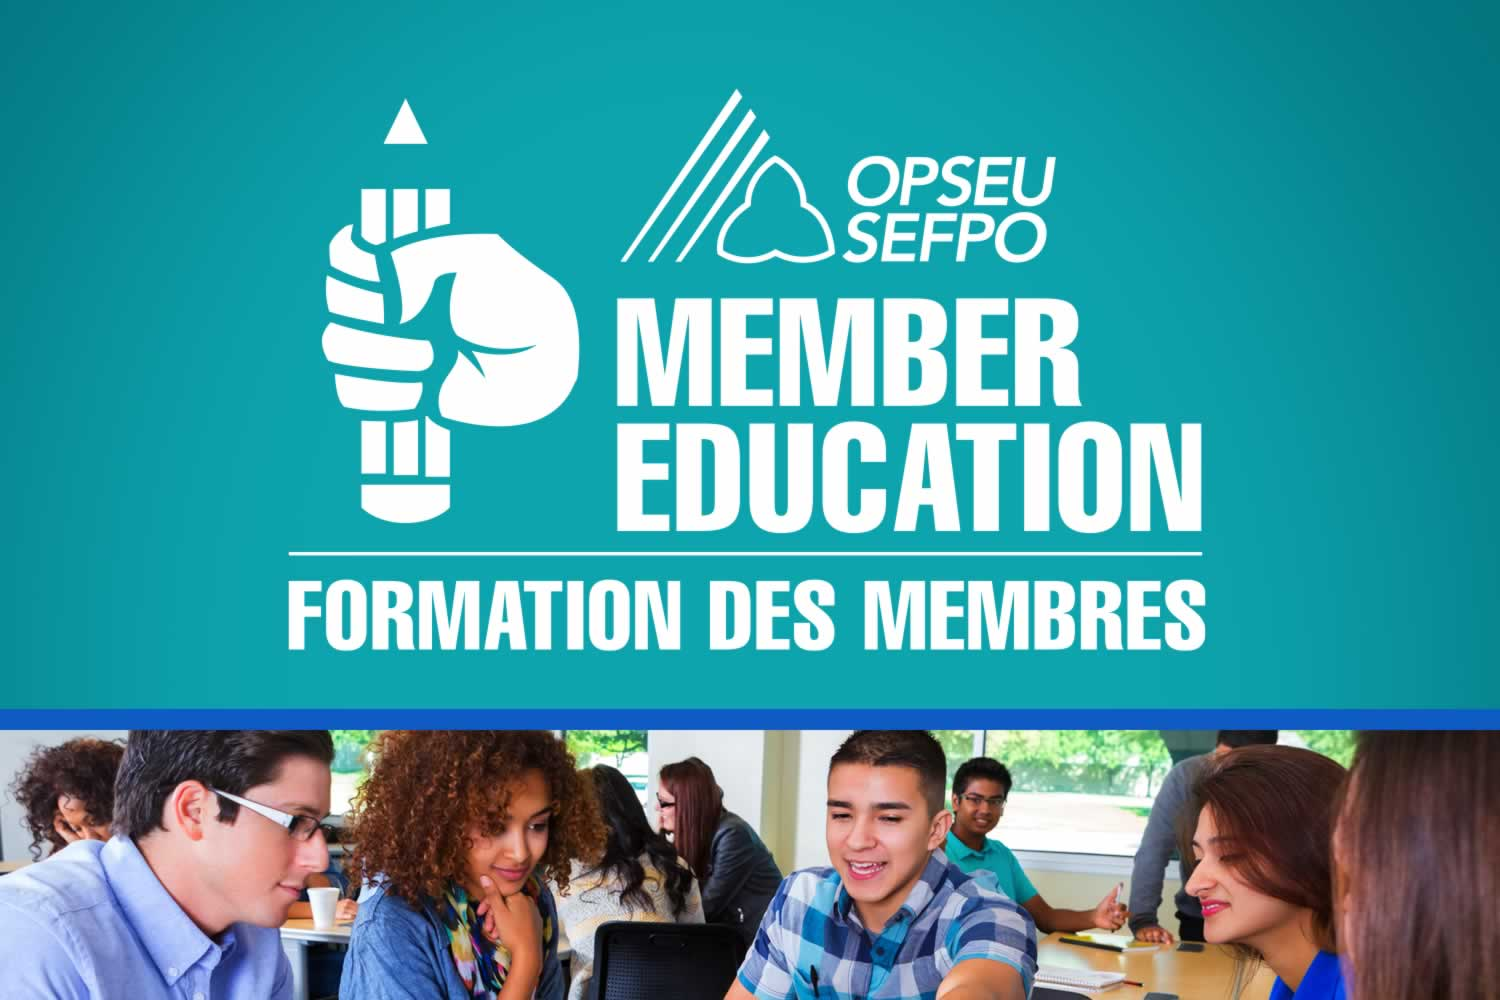 People takin a class and the Education/Formation des Membres logo